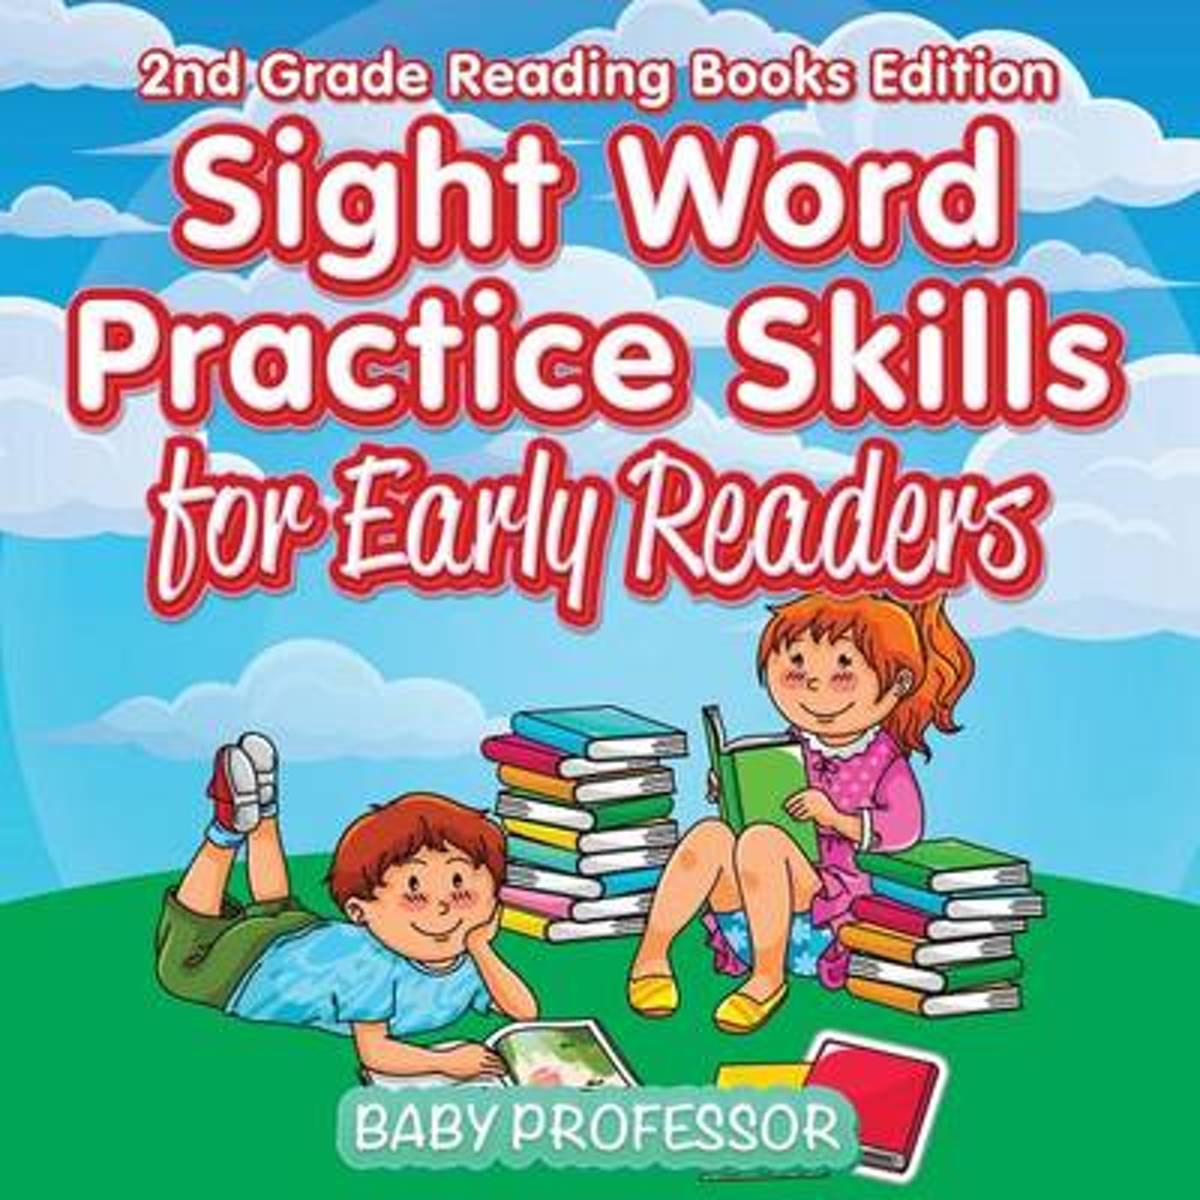 Sight Word Practice Skills for Early Readers - 2nd Grade Reading Books Edition